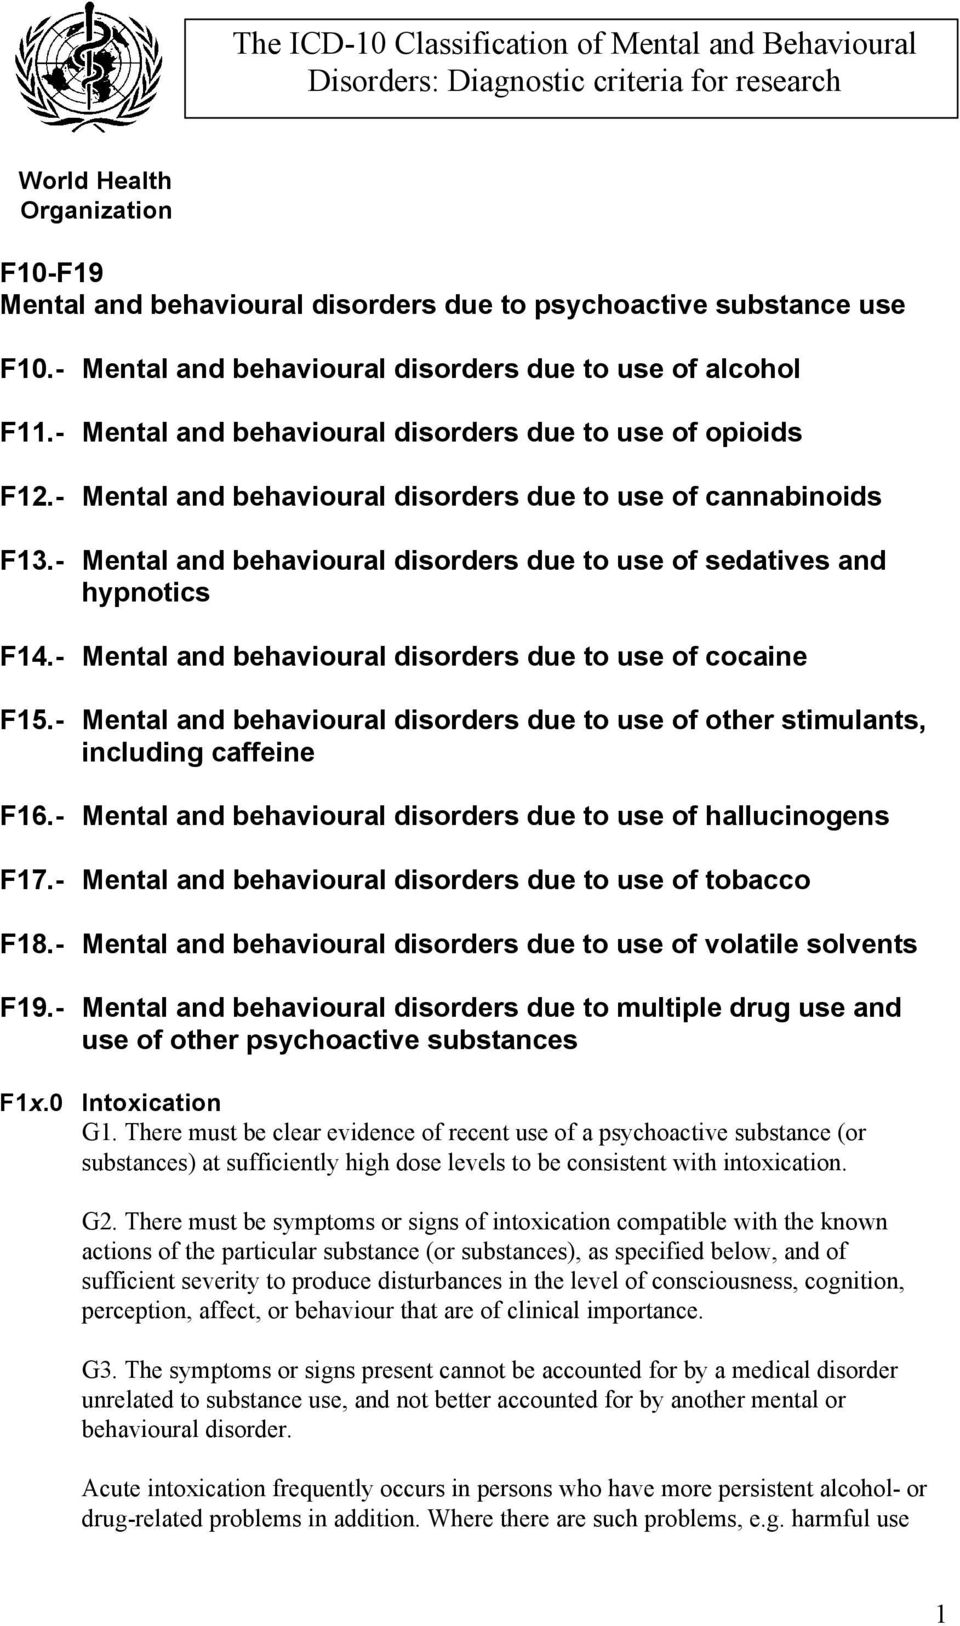 The ICD-10 Classification of Mental and Behavioural